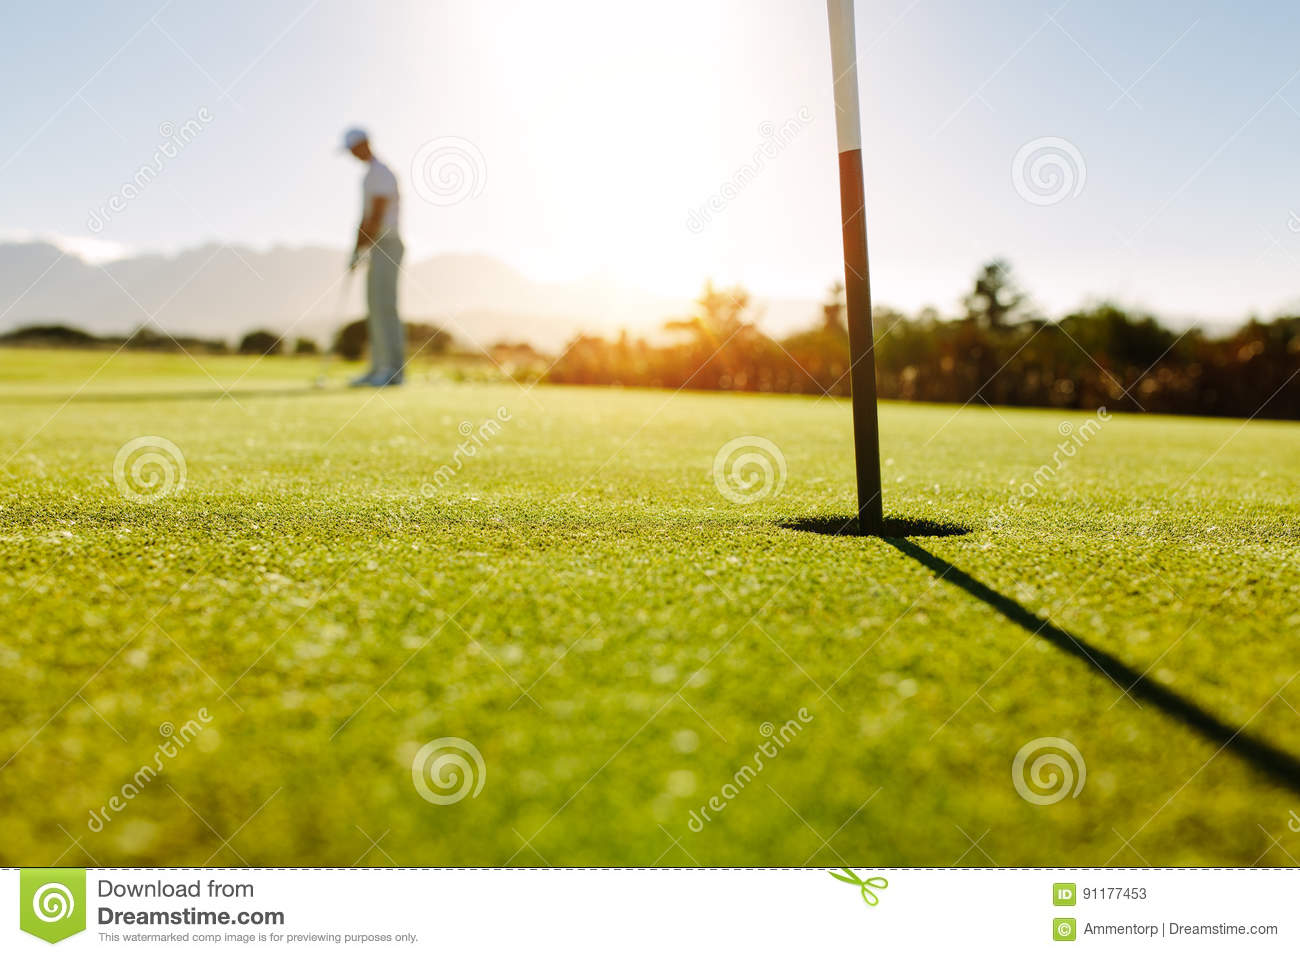 Golf hole and flag in the green field with golfer